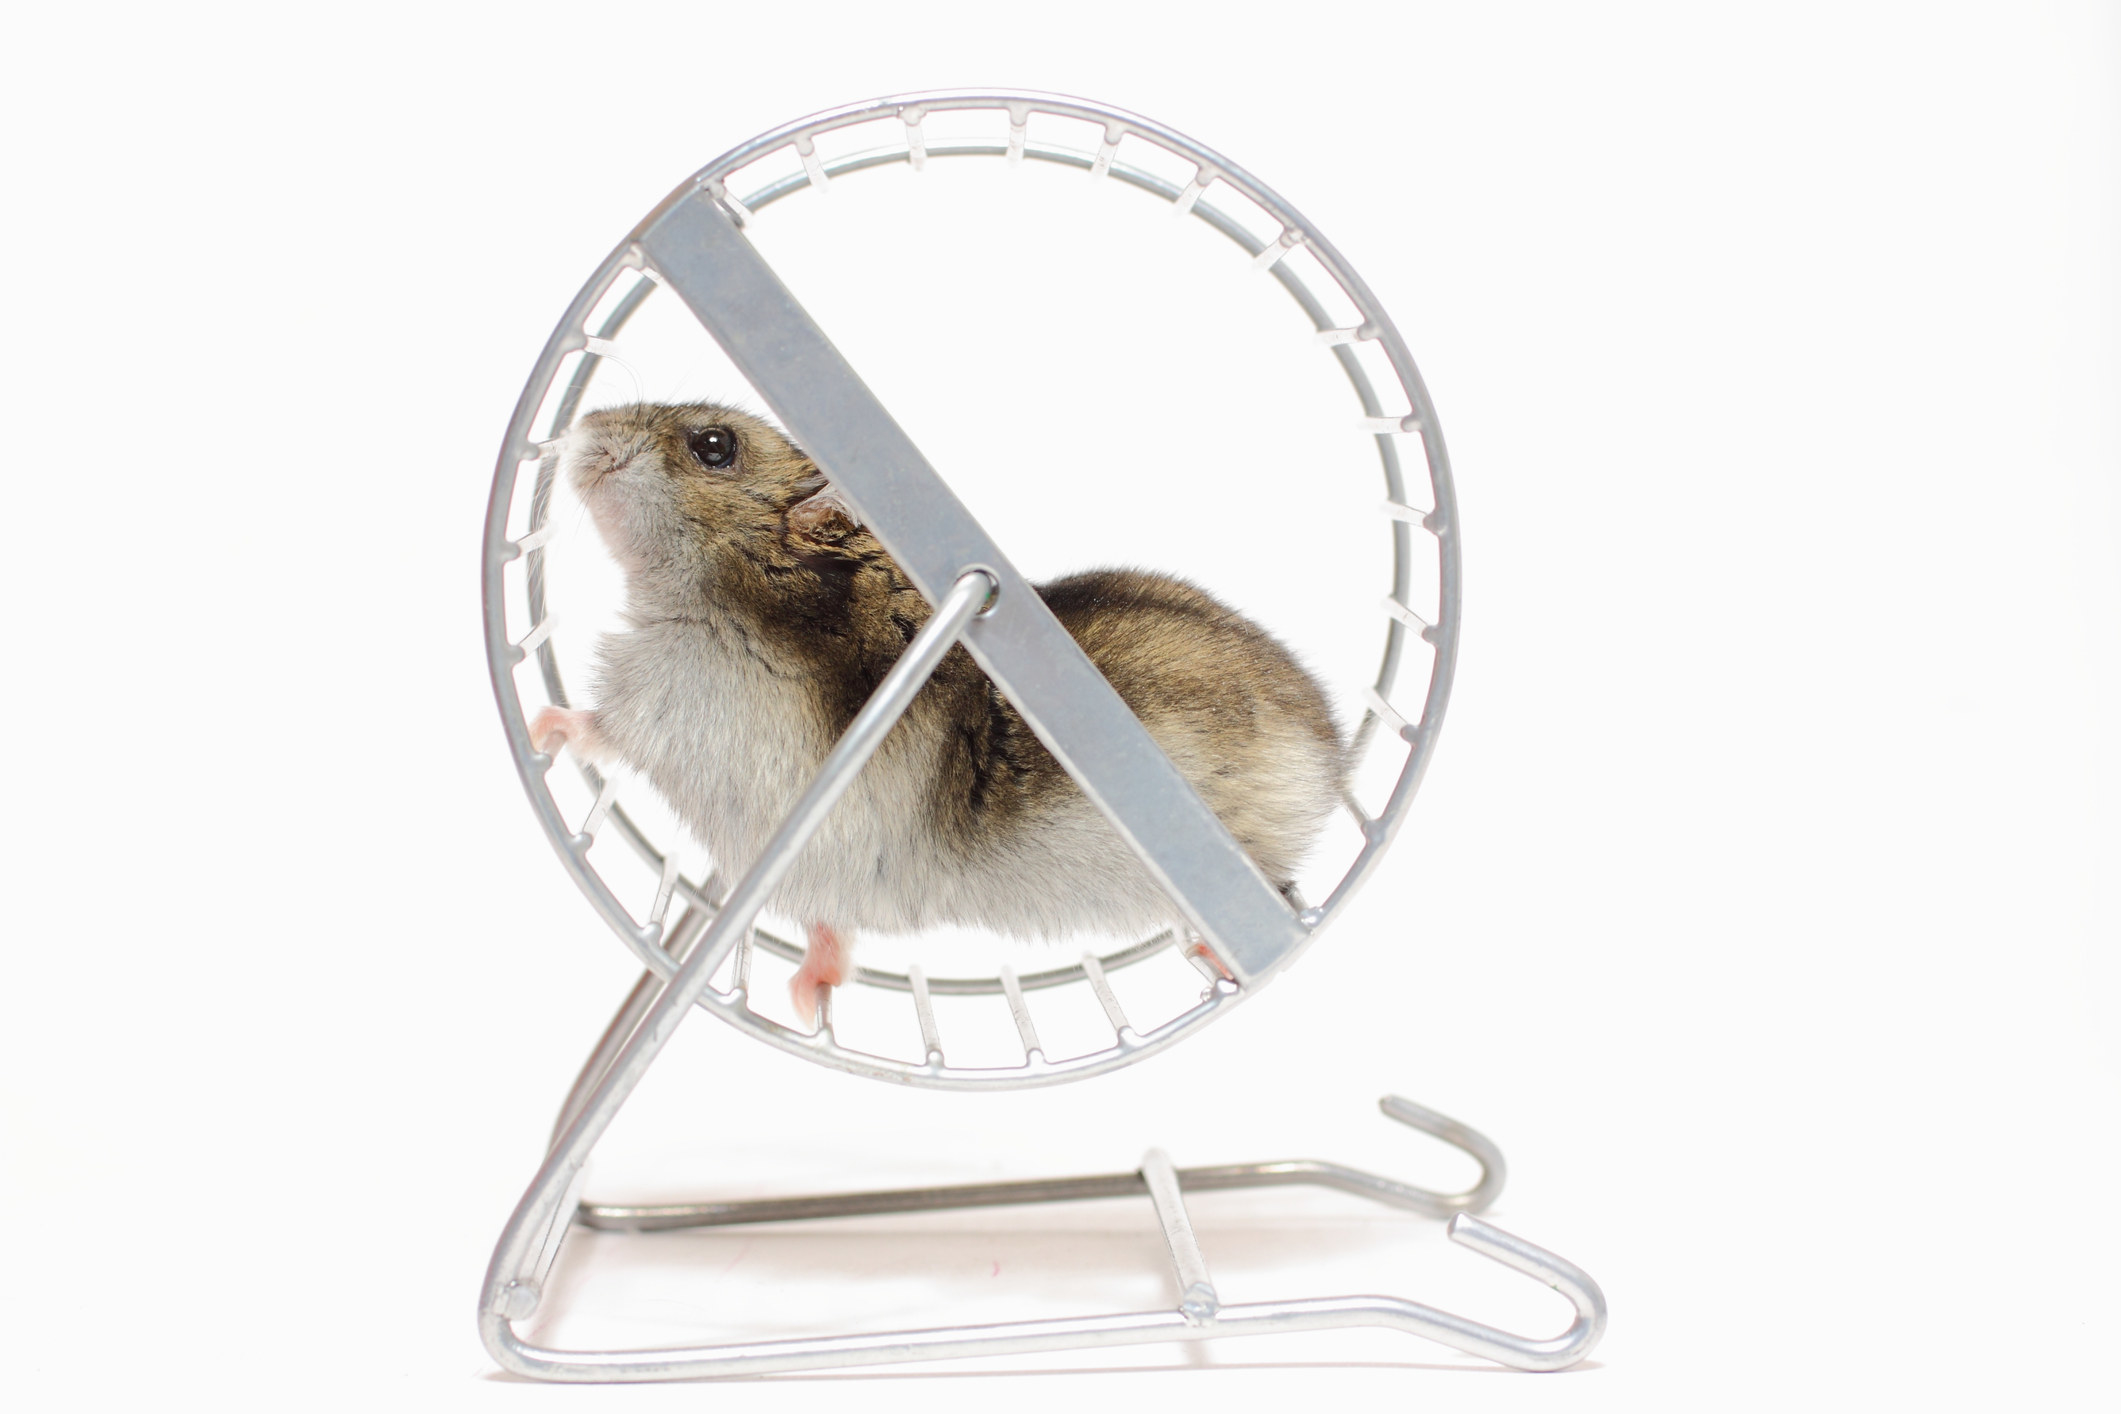 A small white and brown hamster in a wheel